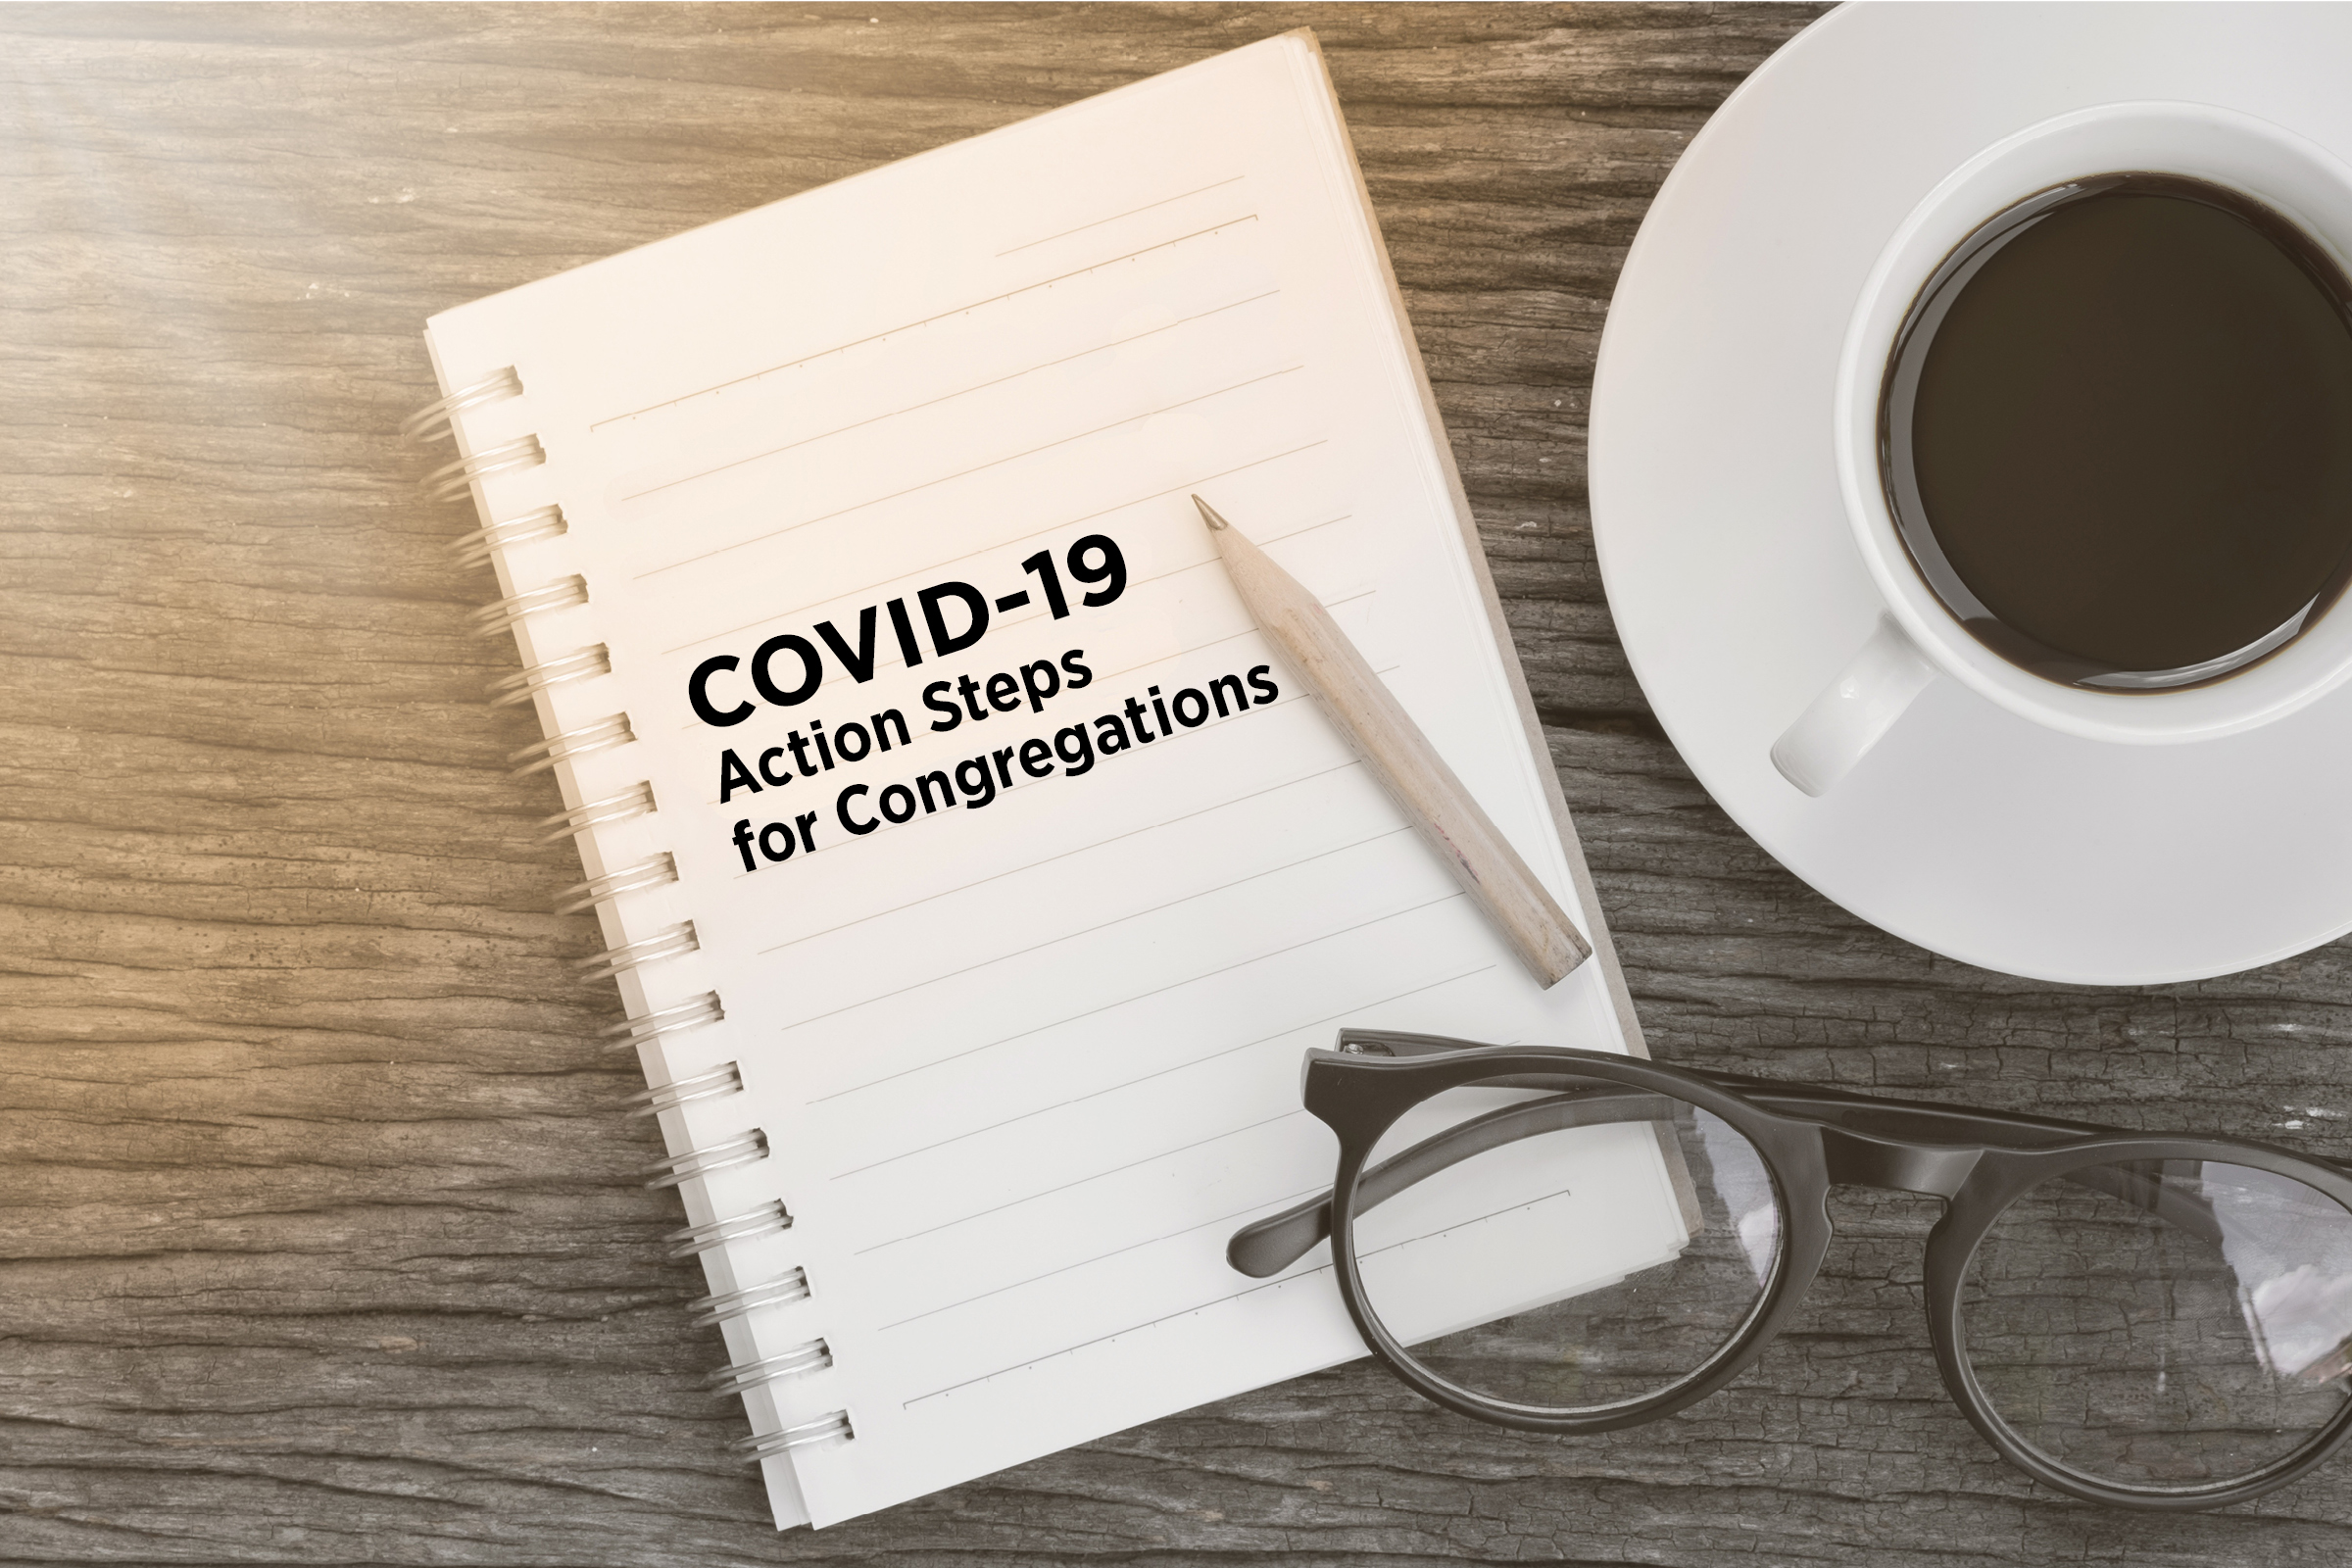 COVID-19 Action Plan for Congregations